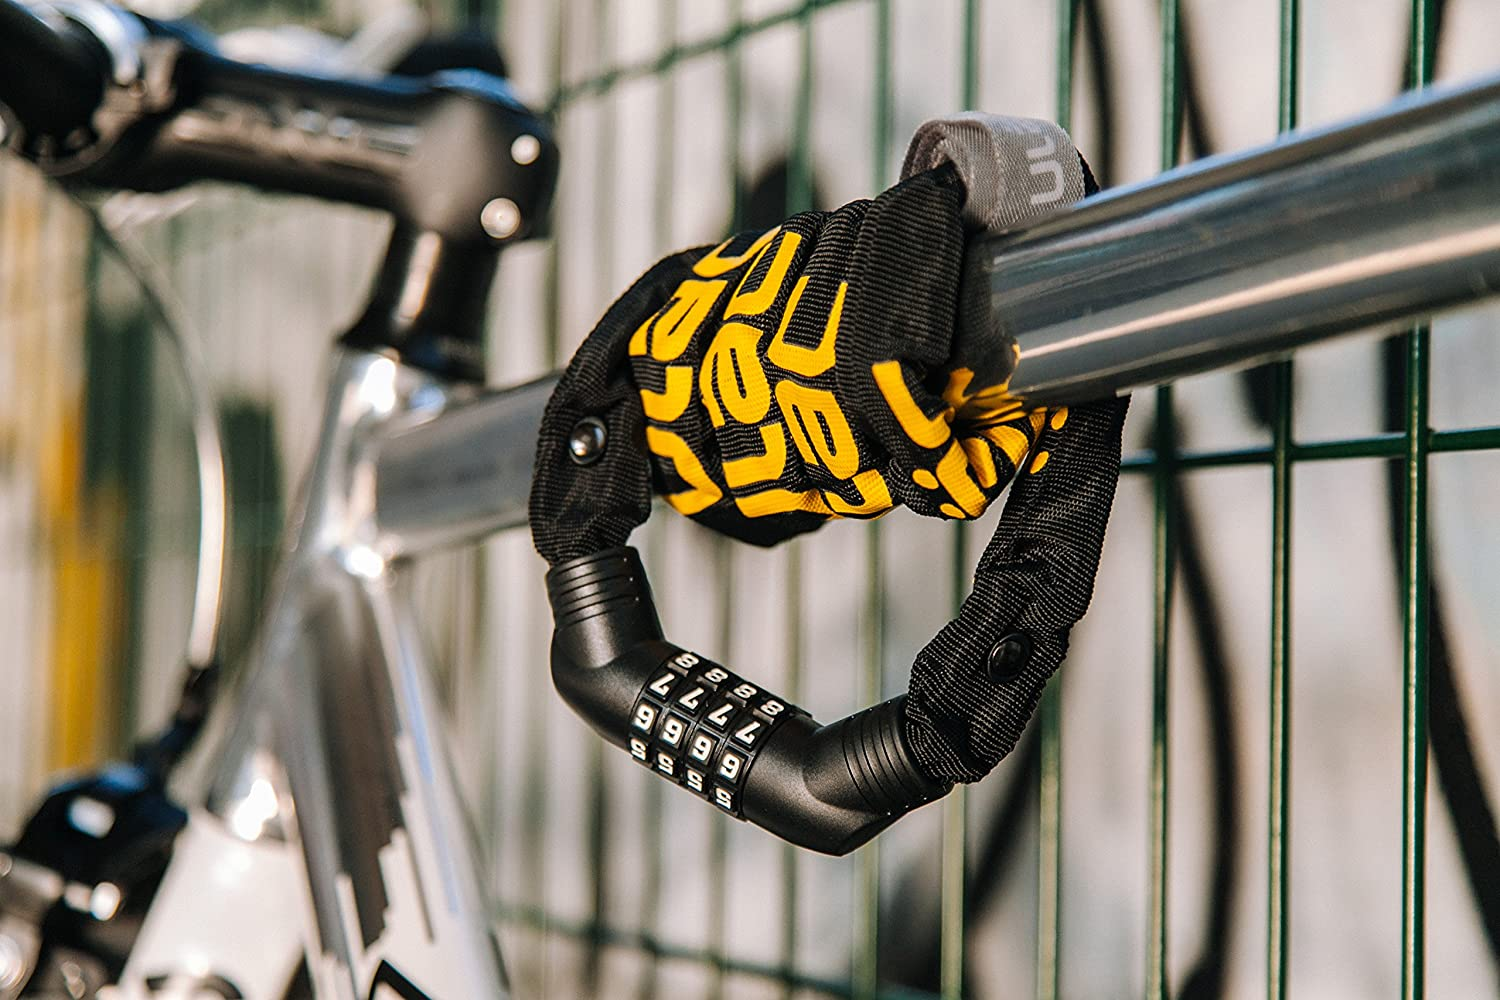 Resettable 4-Digit Combination Anti-Theft Bicycle Lock ULAC Street Fighter Neo Chain Lock Combo Stealth